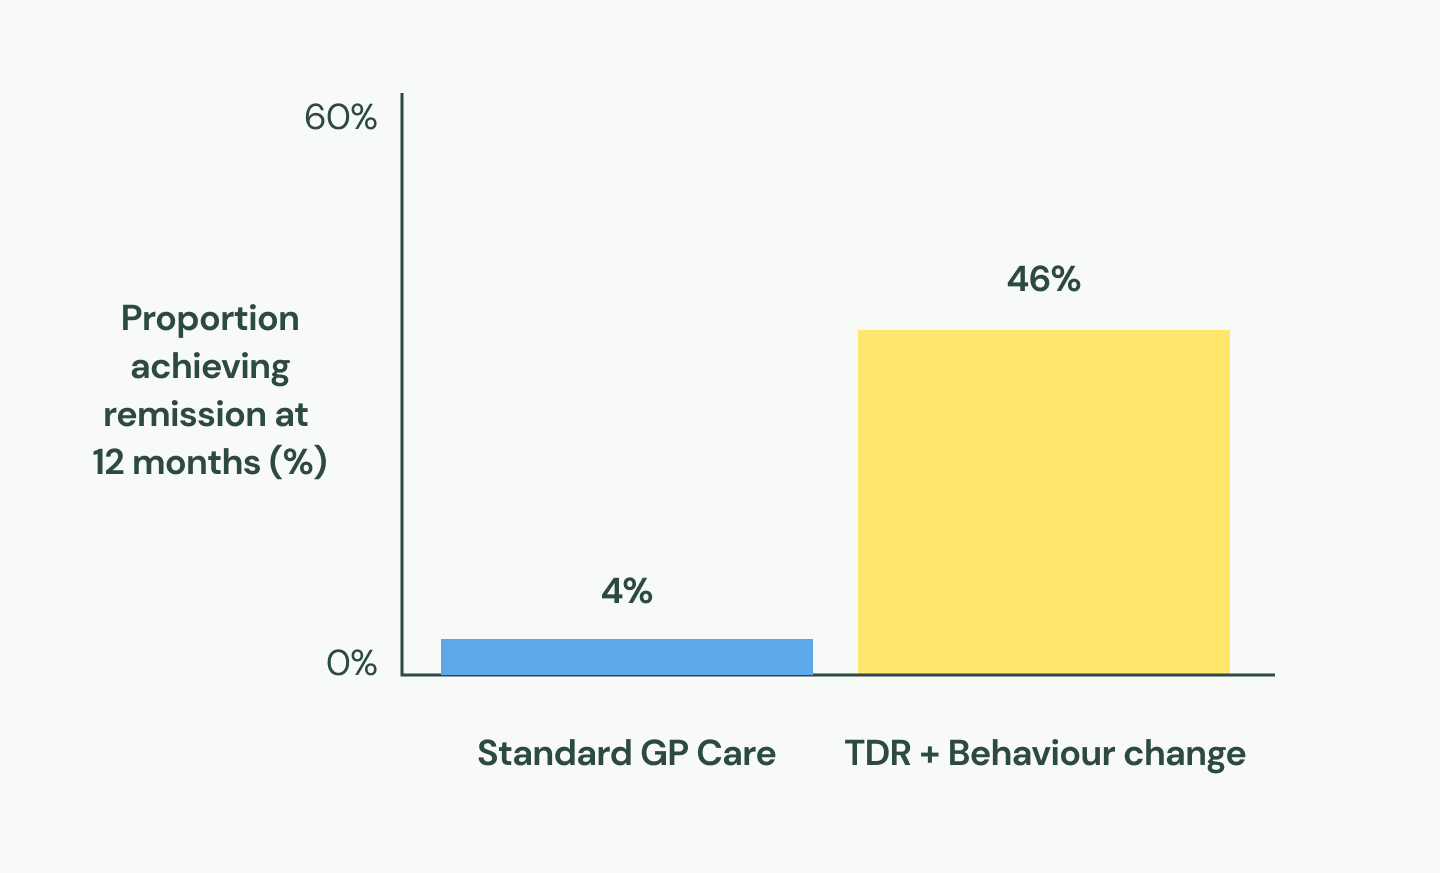 A chart showing the percentage of diabetes remission achieved at 12 months with standard care (4%) versus total diet replacement + behaviour change (46%).